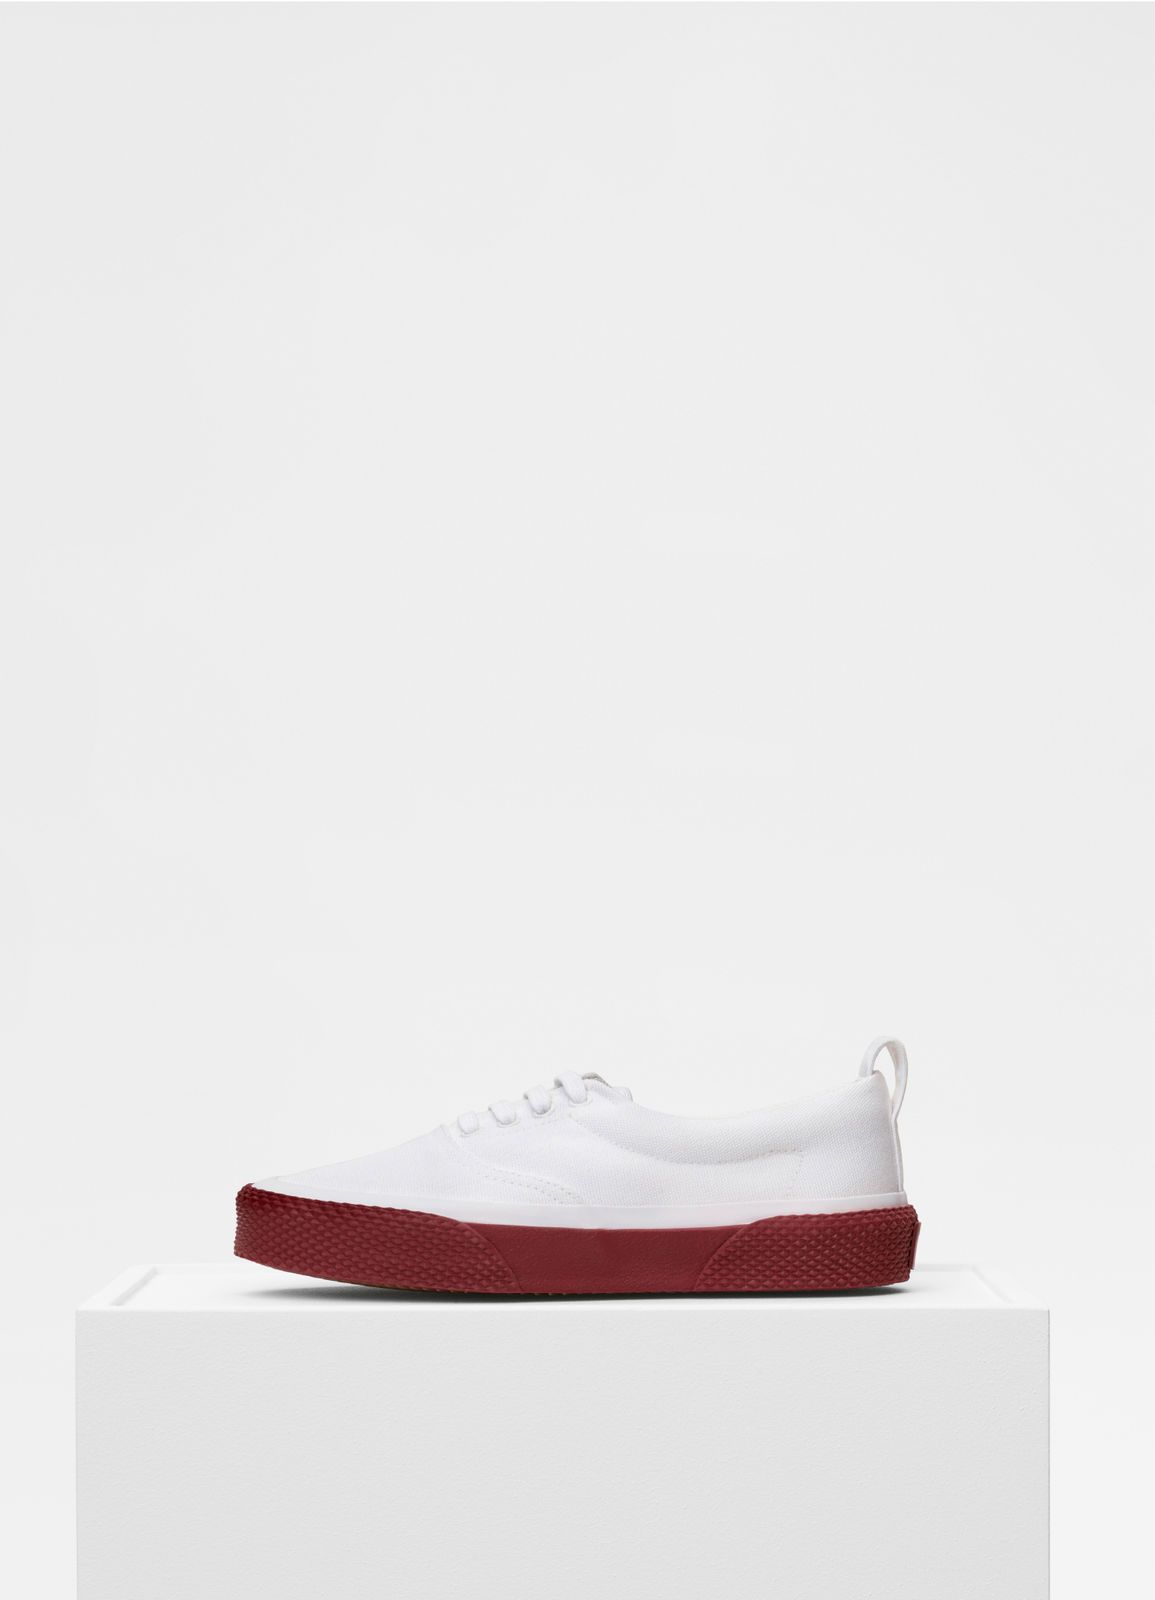 180° Lace Up Sneaker in canvas | CÉLINE